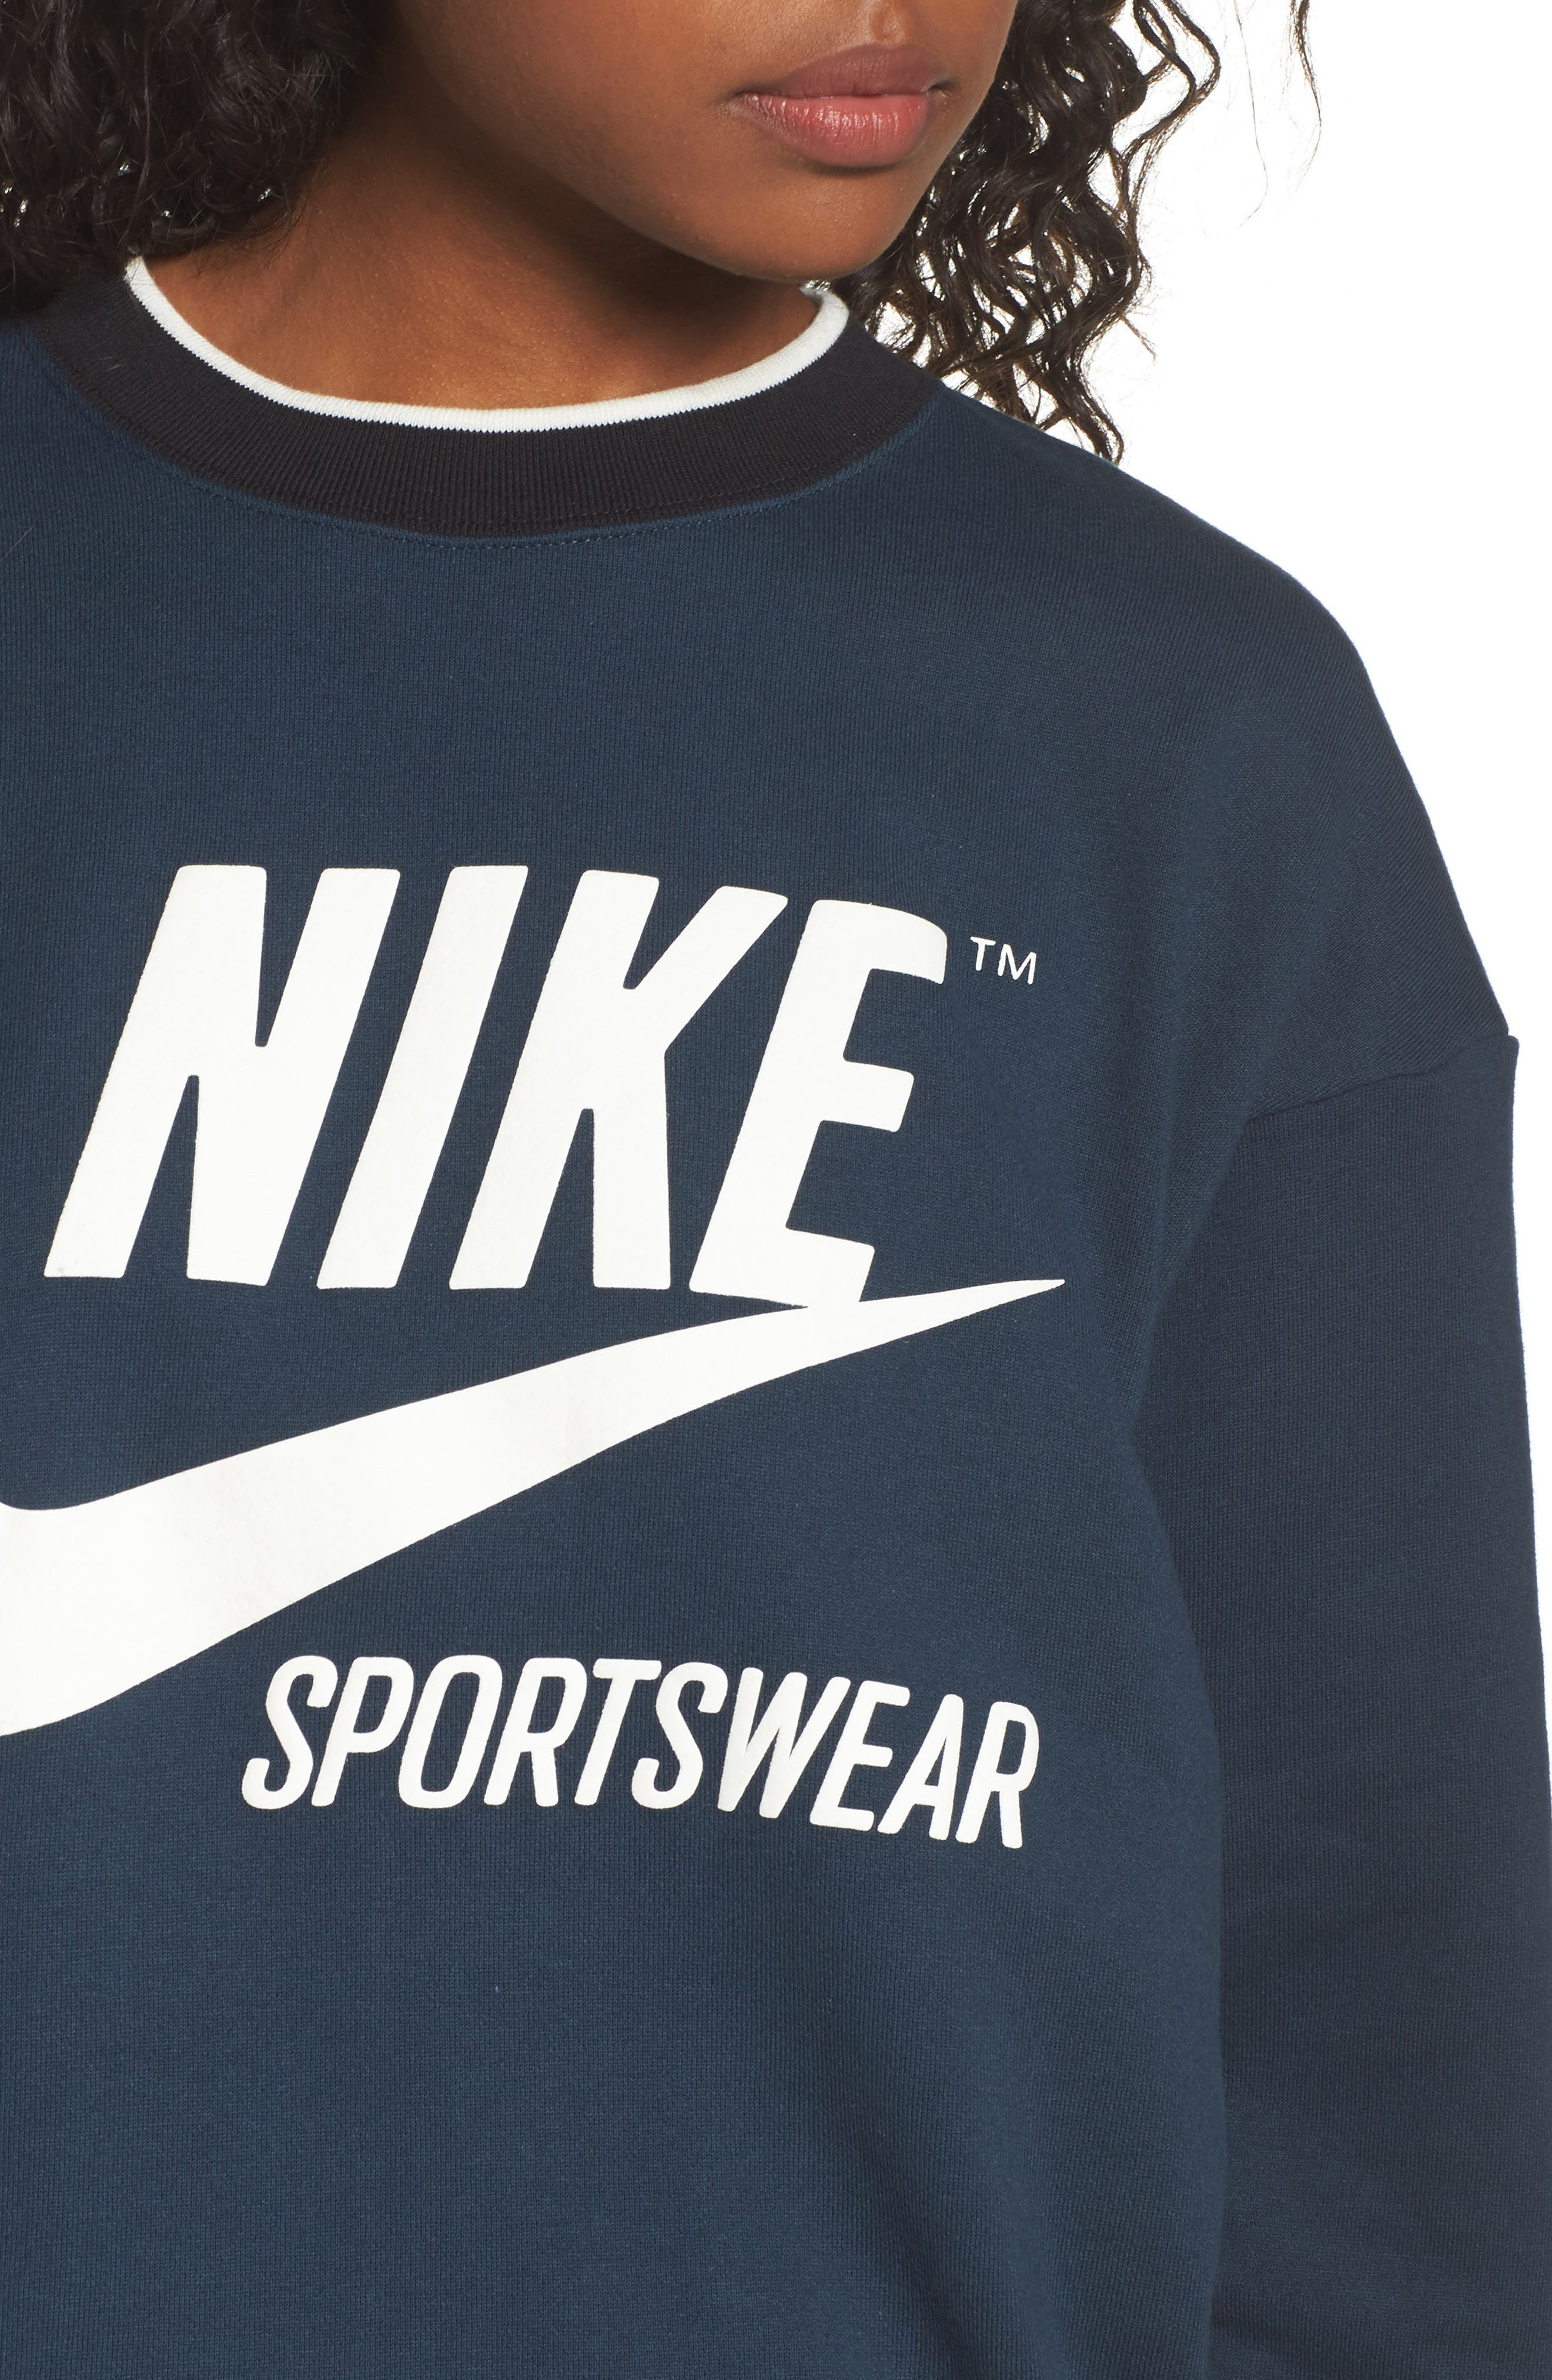 Sportswear Archive Sweatshirt,                             Alternate thumbnail 4, color,                             454